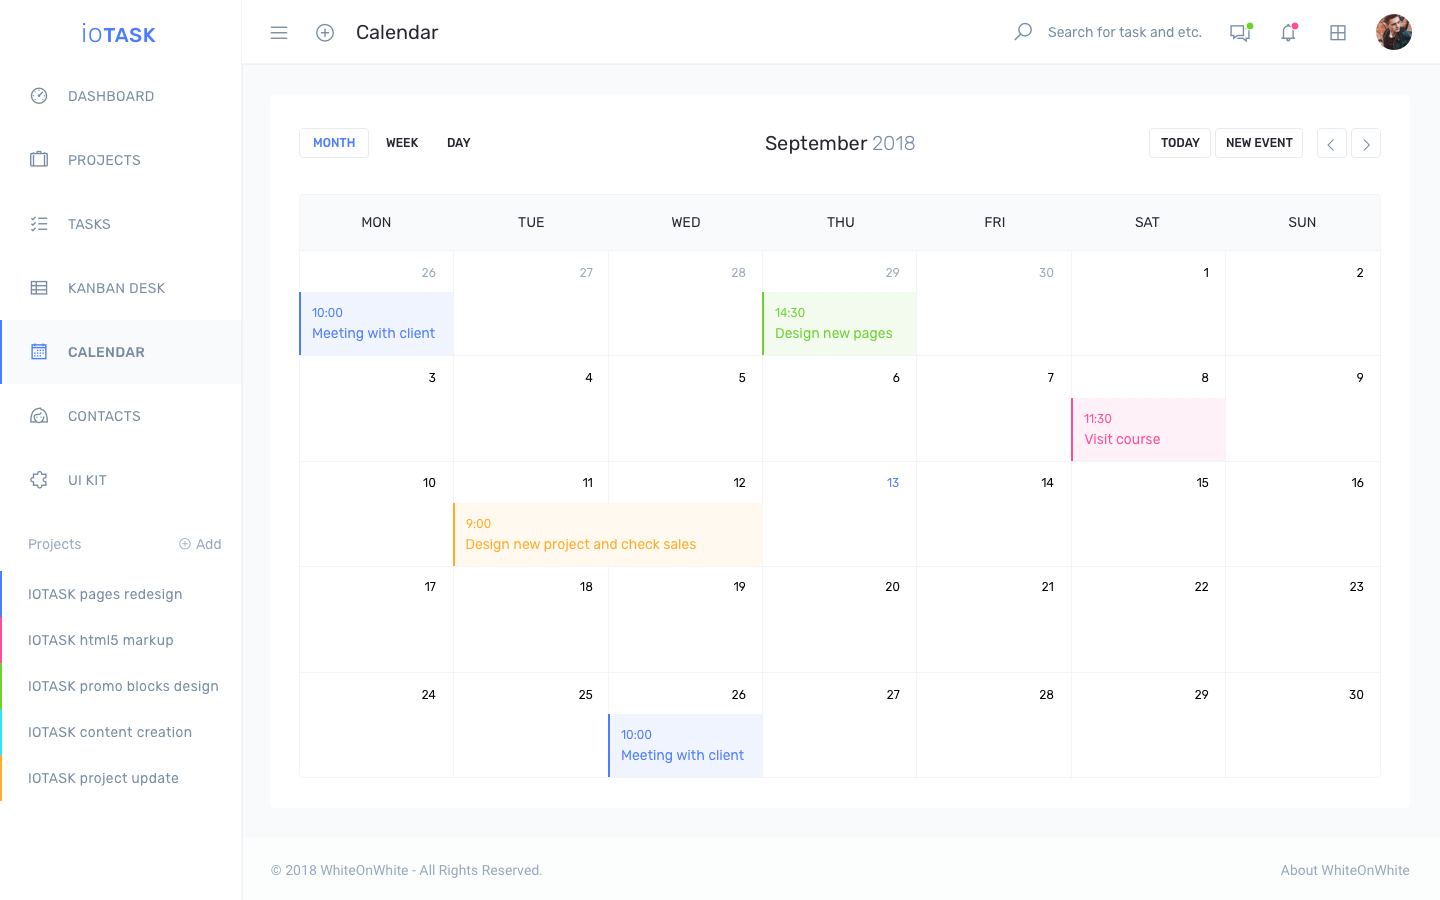 iotask preview calendar